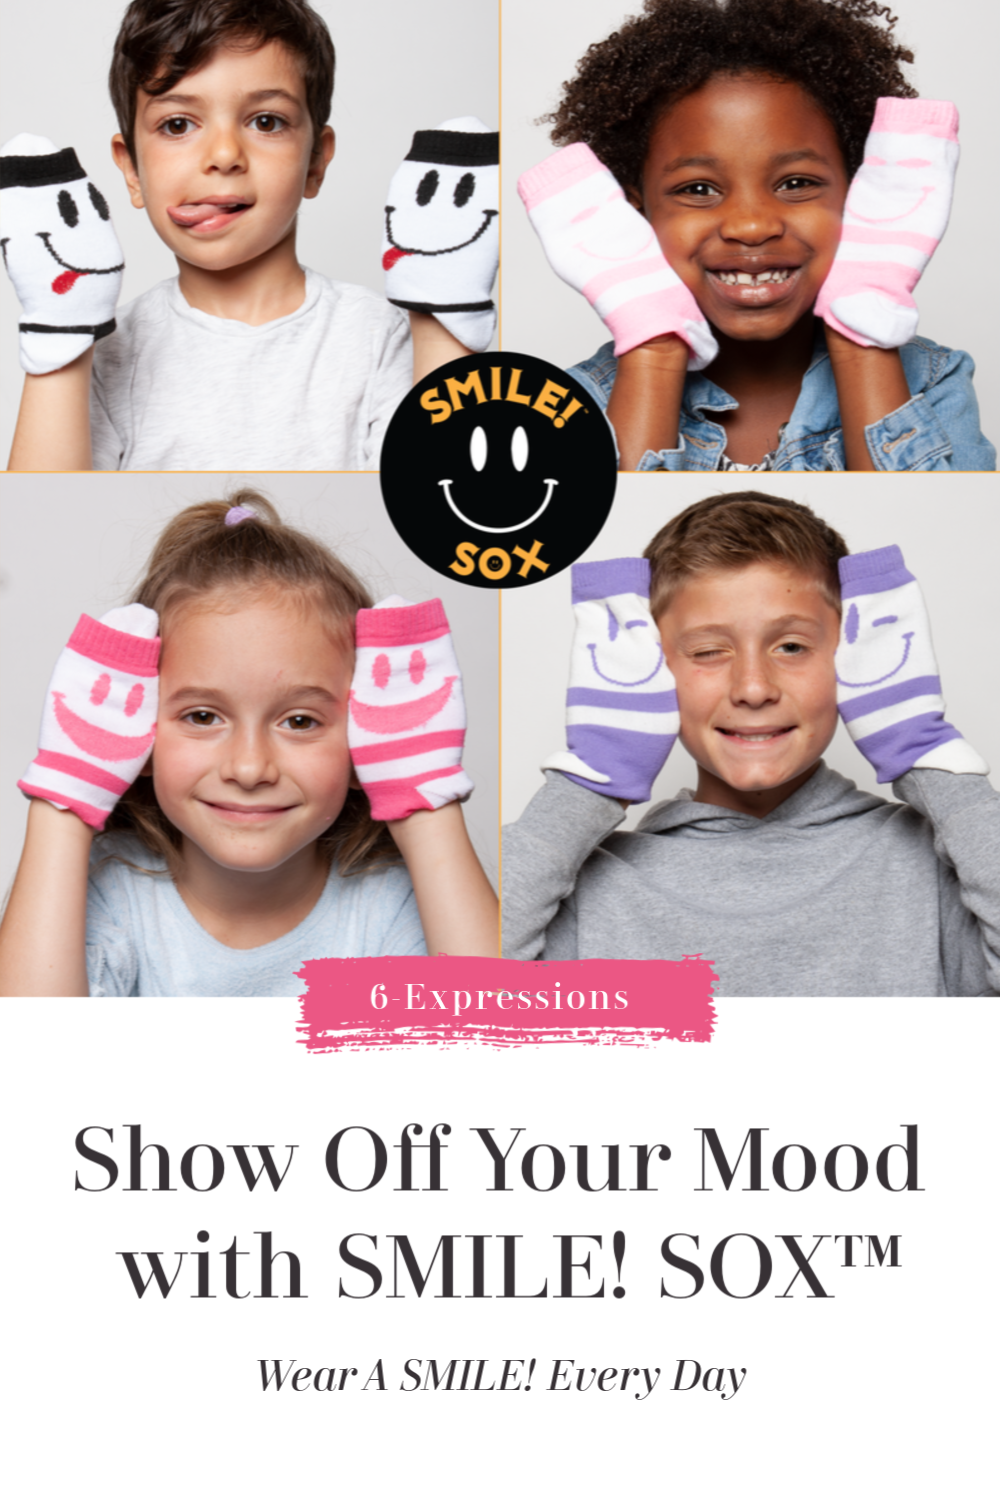 Feelin' Happy, Sad, Grumpy, Funny, Goofy or Jolly? Wear your expression with Back-To-School Special Promotion on NEW line of #SmileSox for kids, tweens & women. Wear a SMILE! every day – enjoy a 15% OFF + FREE Shipping at smilesox.com discount code: smilesox15